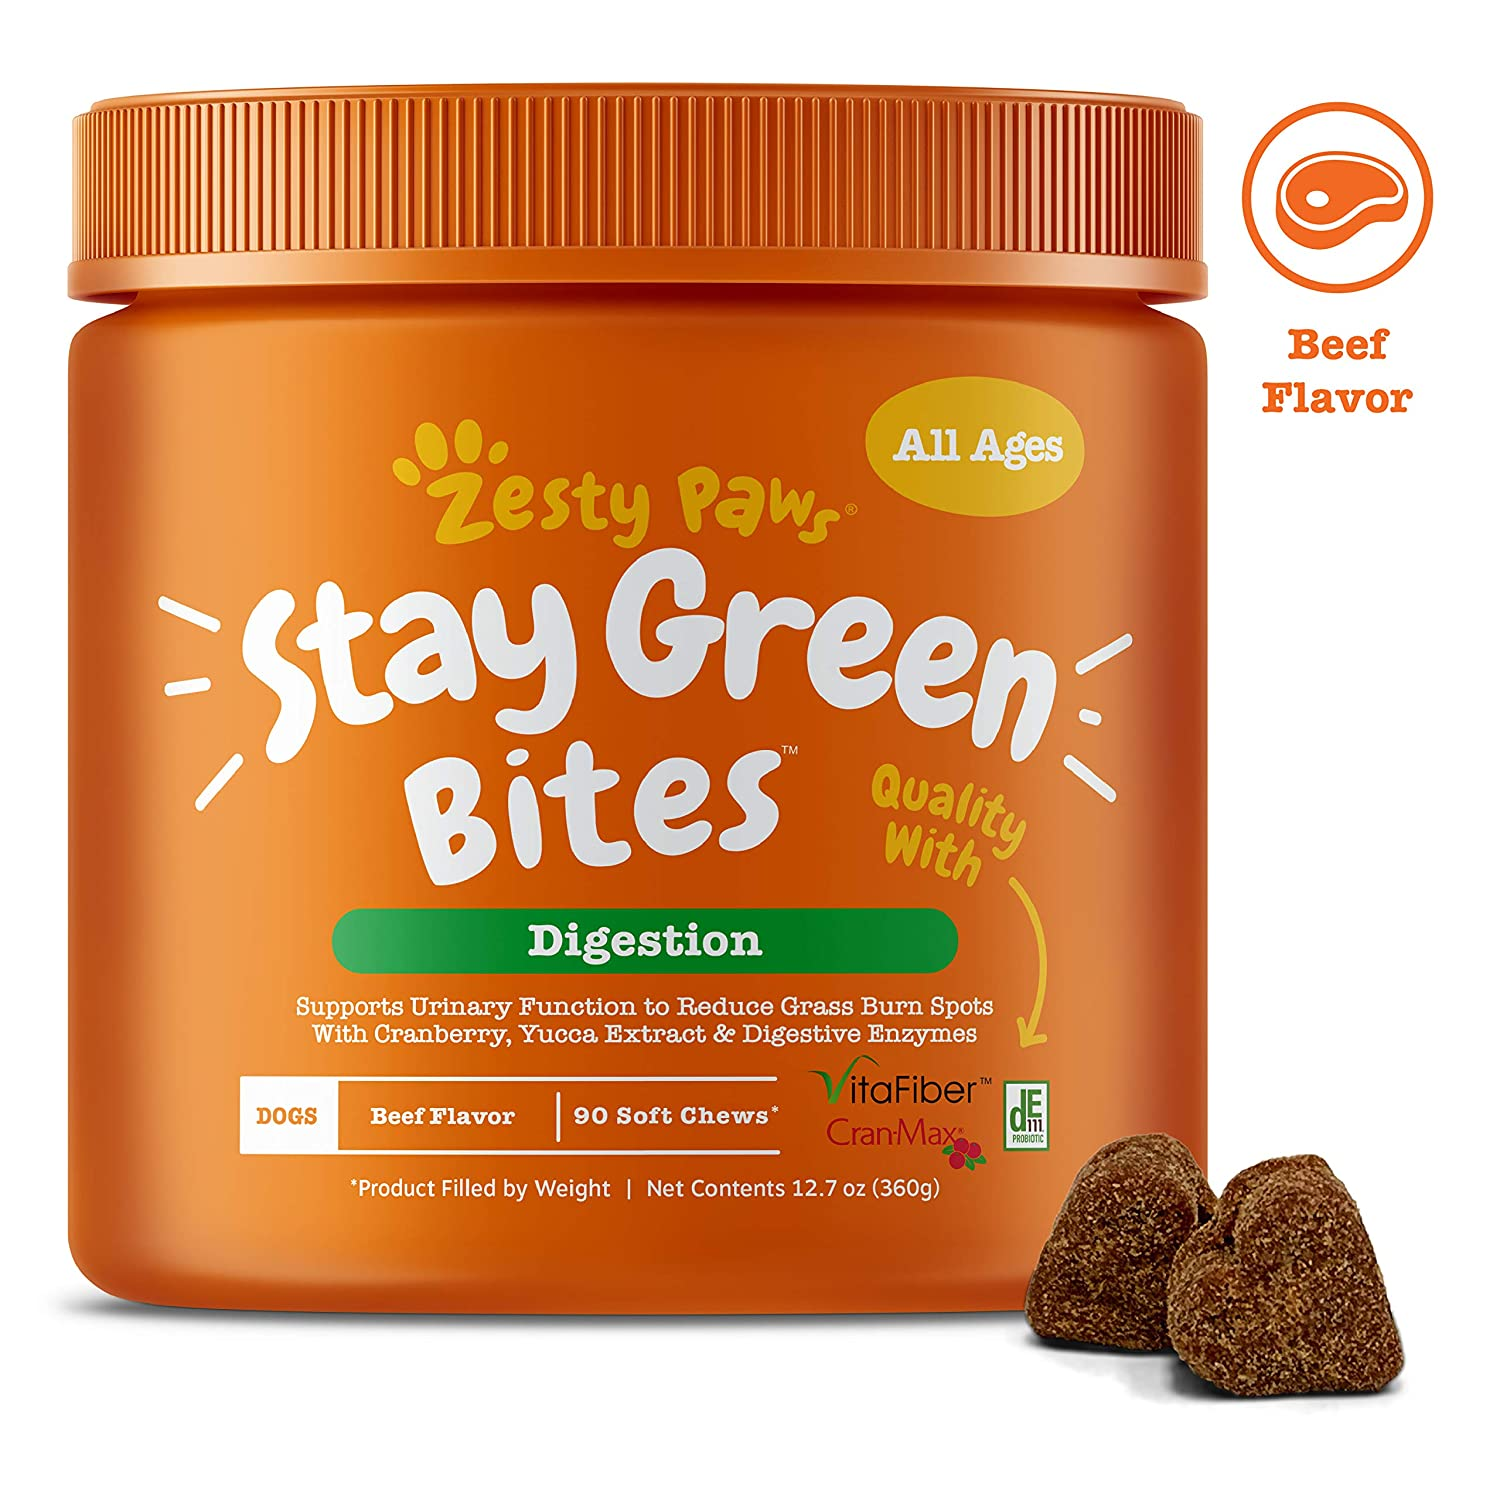 Zesty Paws Stay Green Bites for Dogs - Grass Burn Soft Chews for Lawn Spots from Dog Urine - Cran-Max Cranberry for UT & Bladder - Apple Cider Vinegar, Digestive 90ct